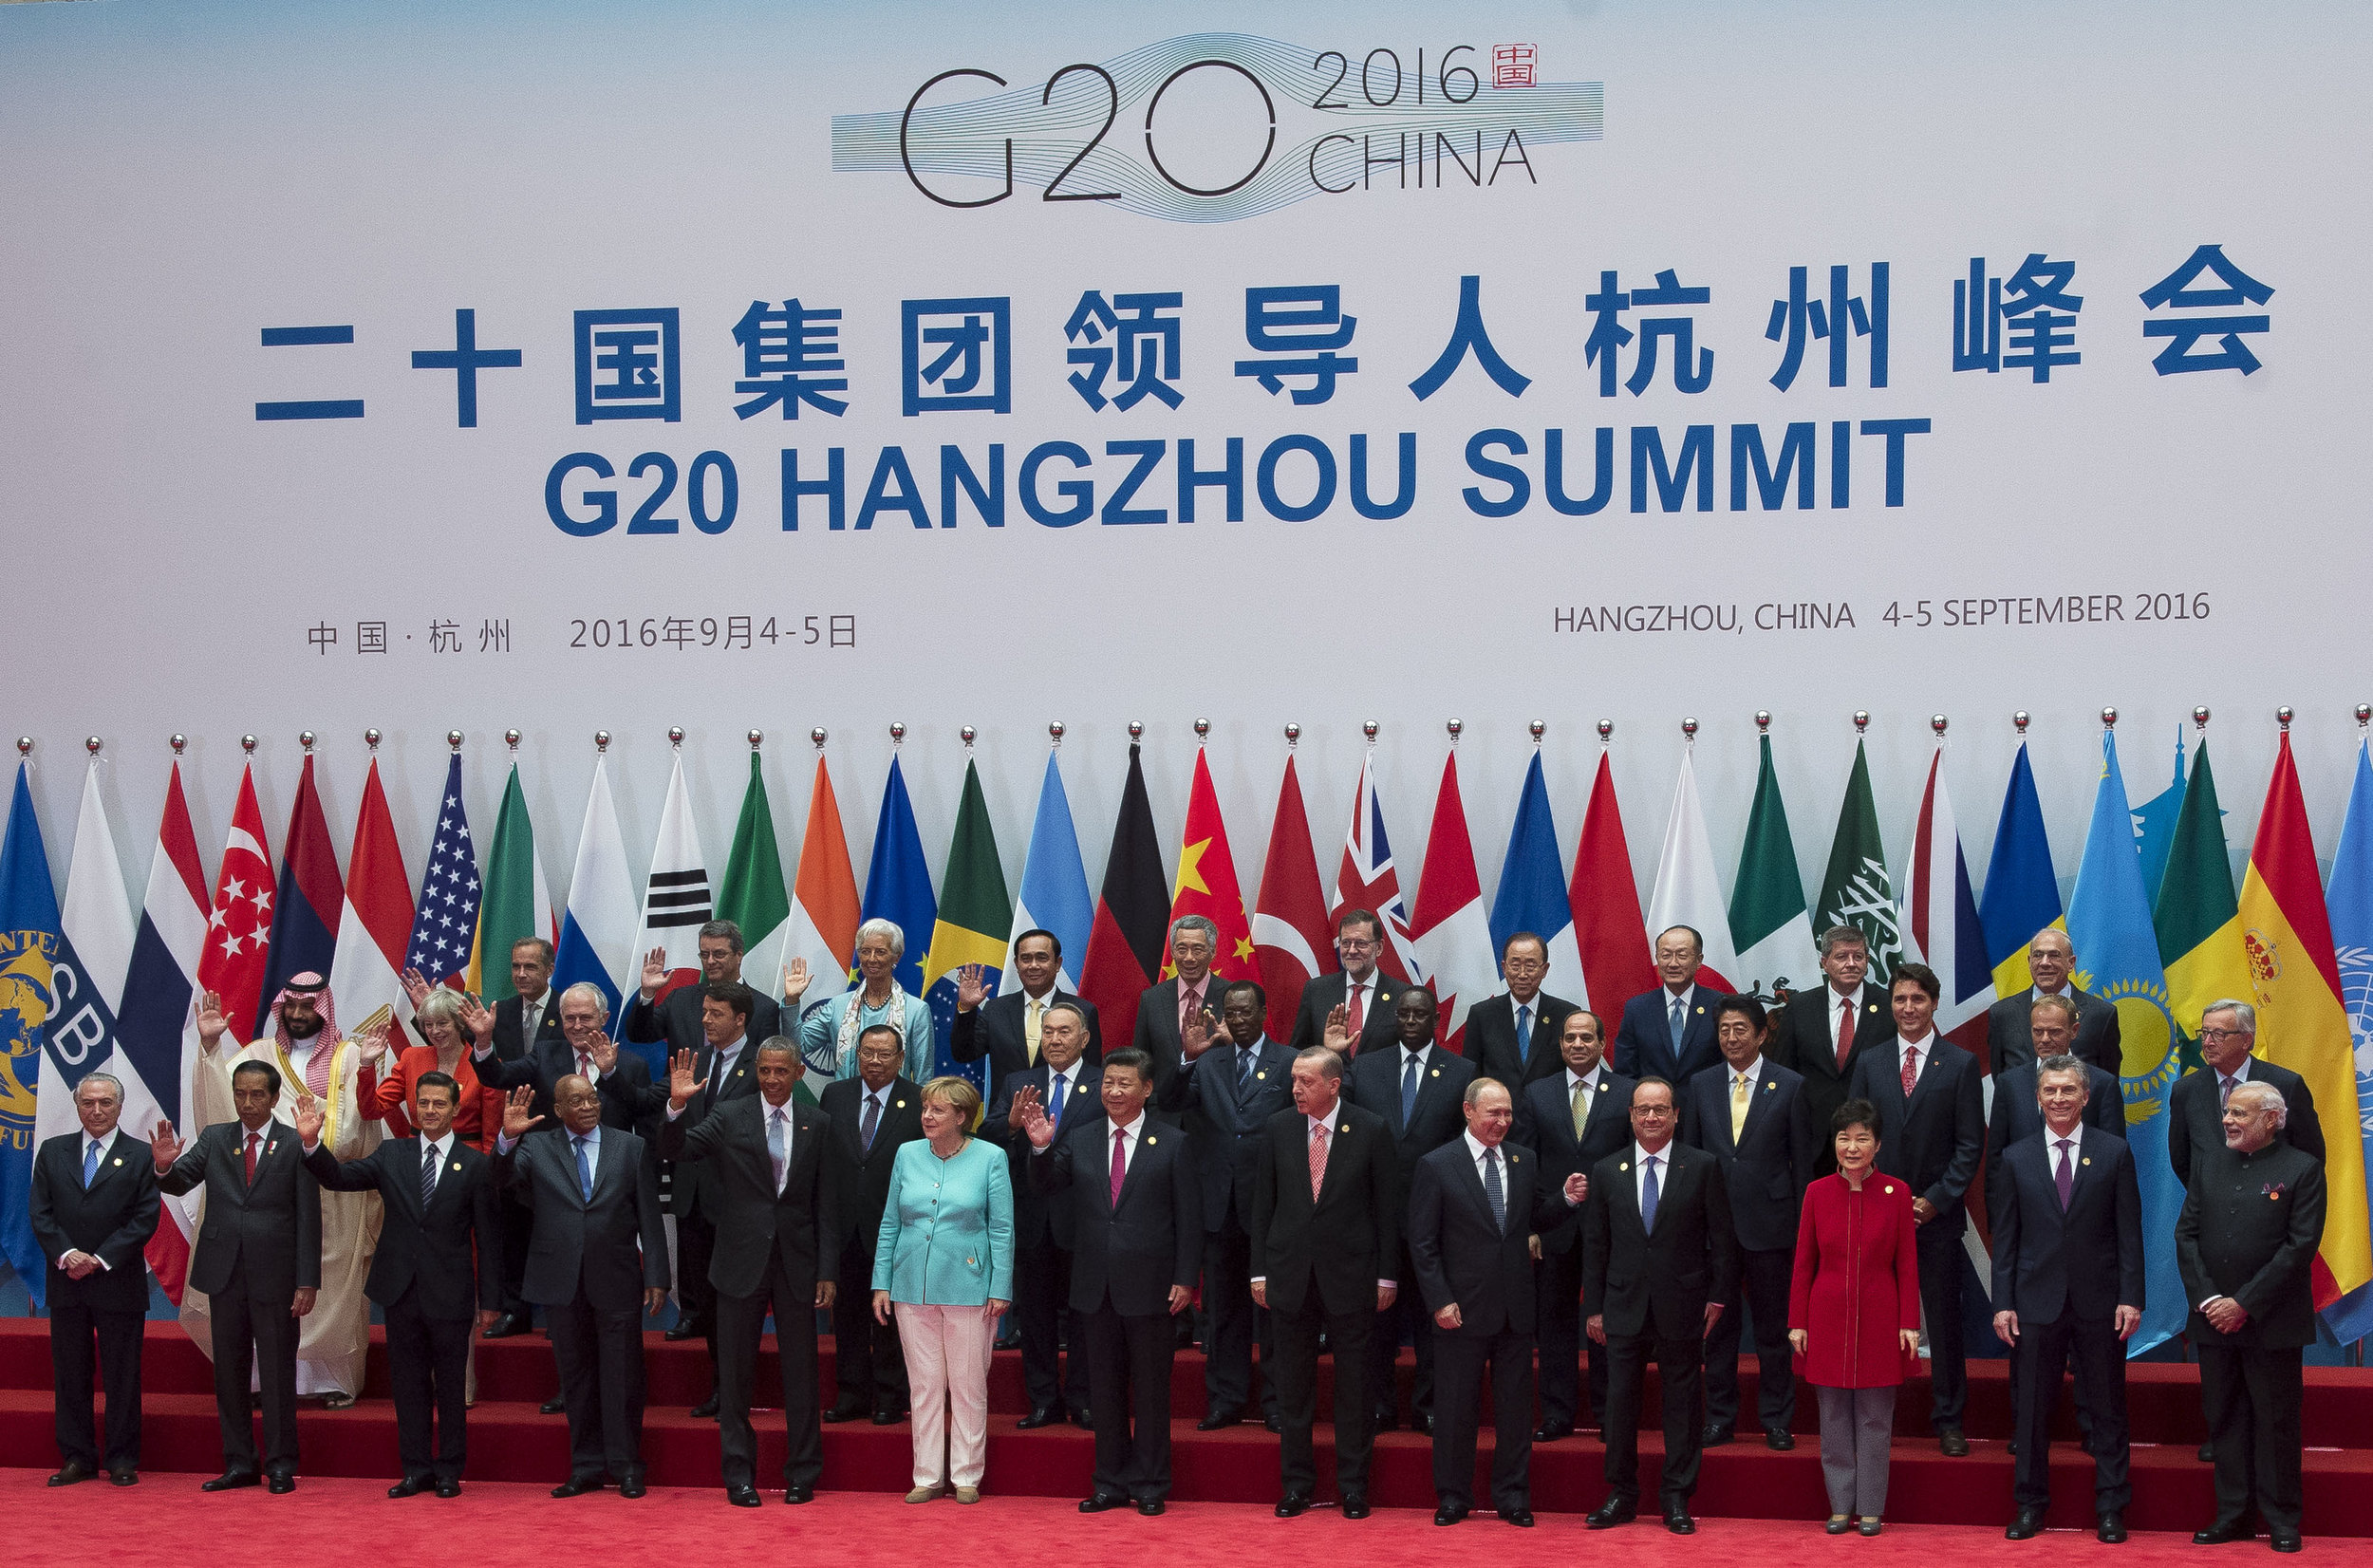 G20 member leaders previously gathered in China in September of 2016. (Wikimedia Commons)